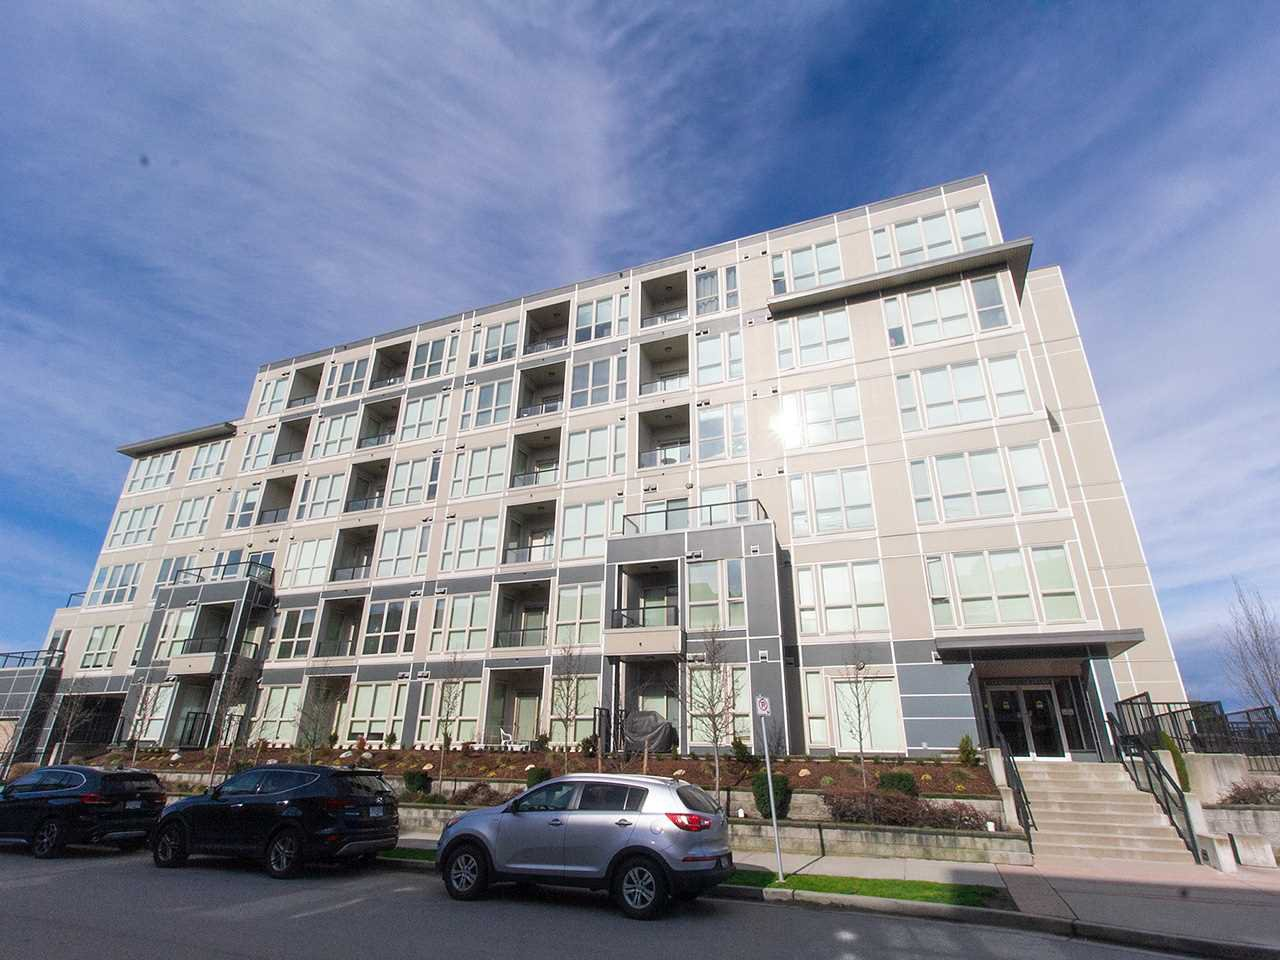 """Main Photo: 398 4133 STOLBERG Street in Richmond: West Cambie Condo for sale in """"Remy"""" : MLS®# R2435494"""